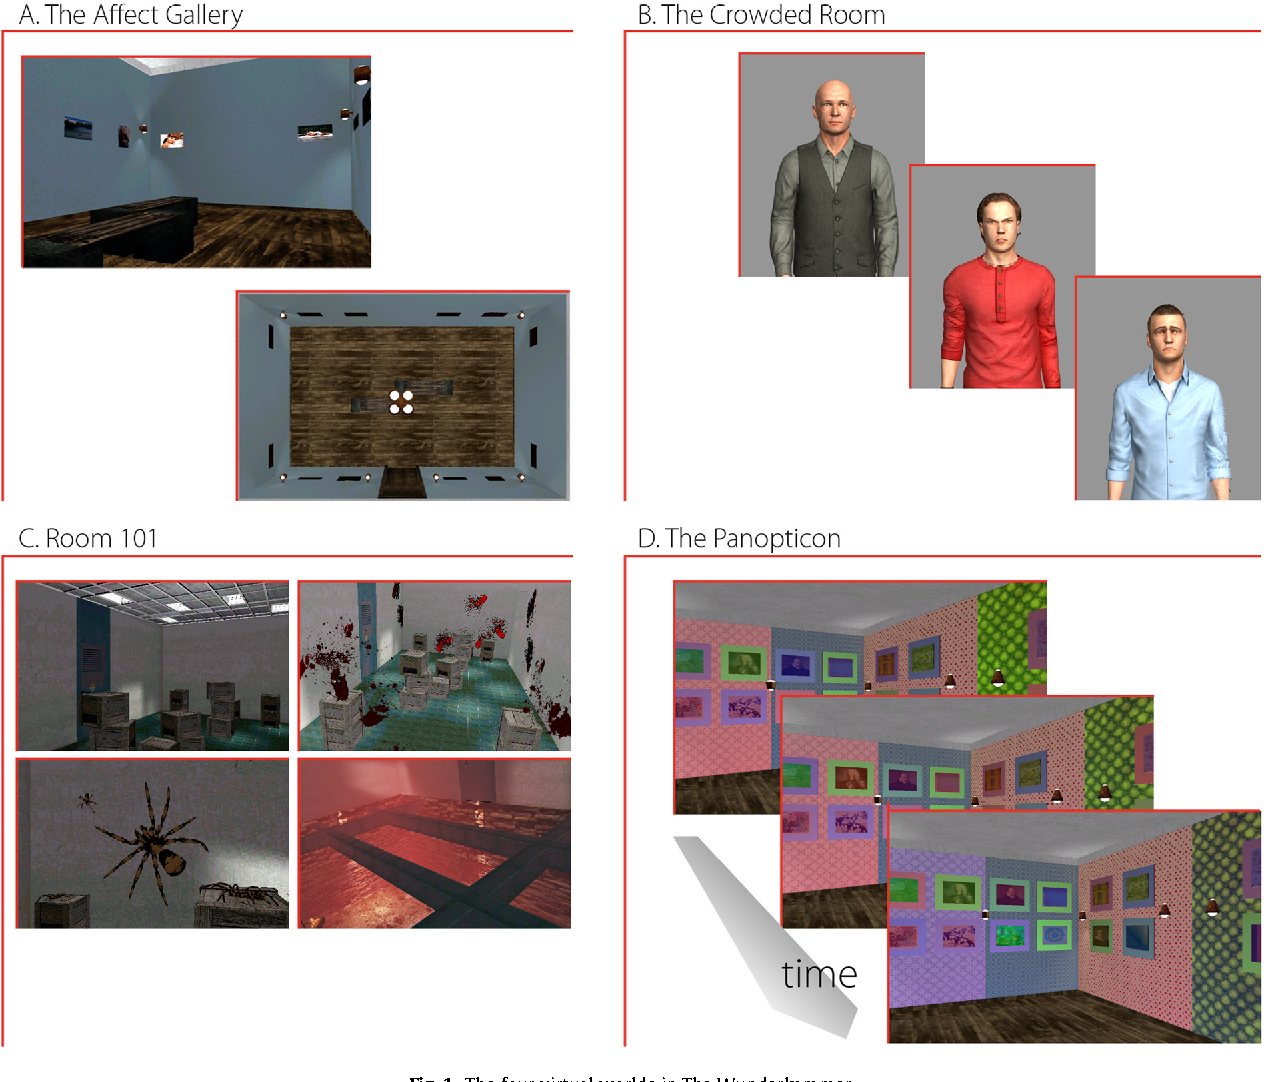 Fig. 1. The four virtual worlds in The Wunderkammer.